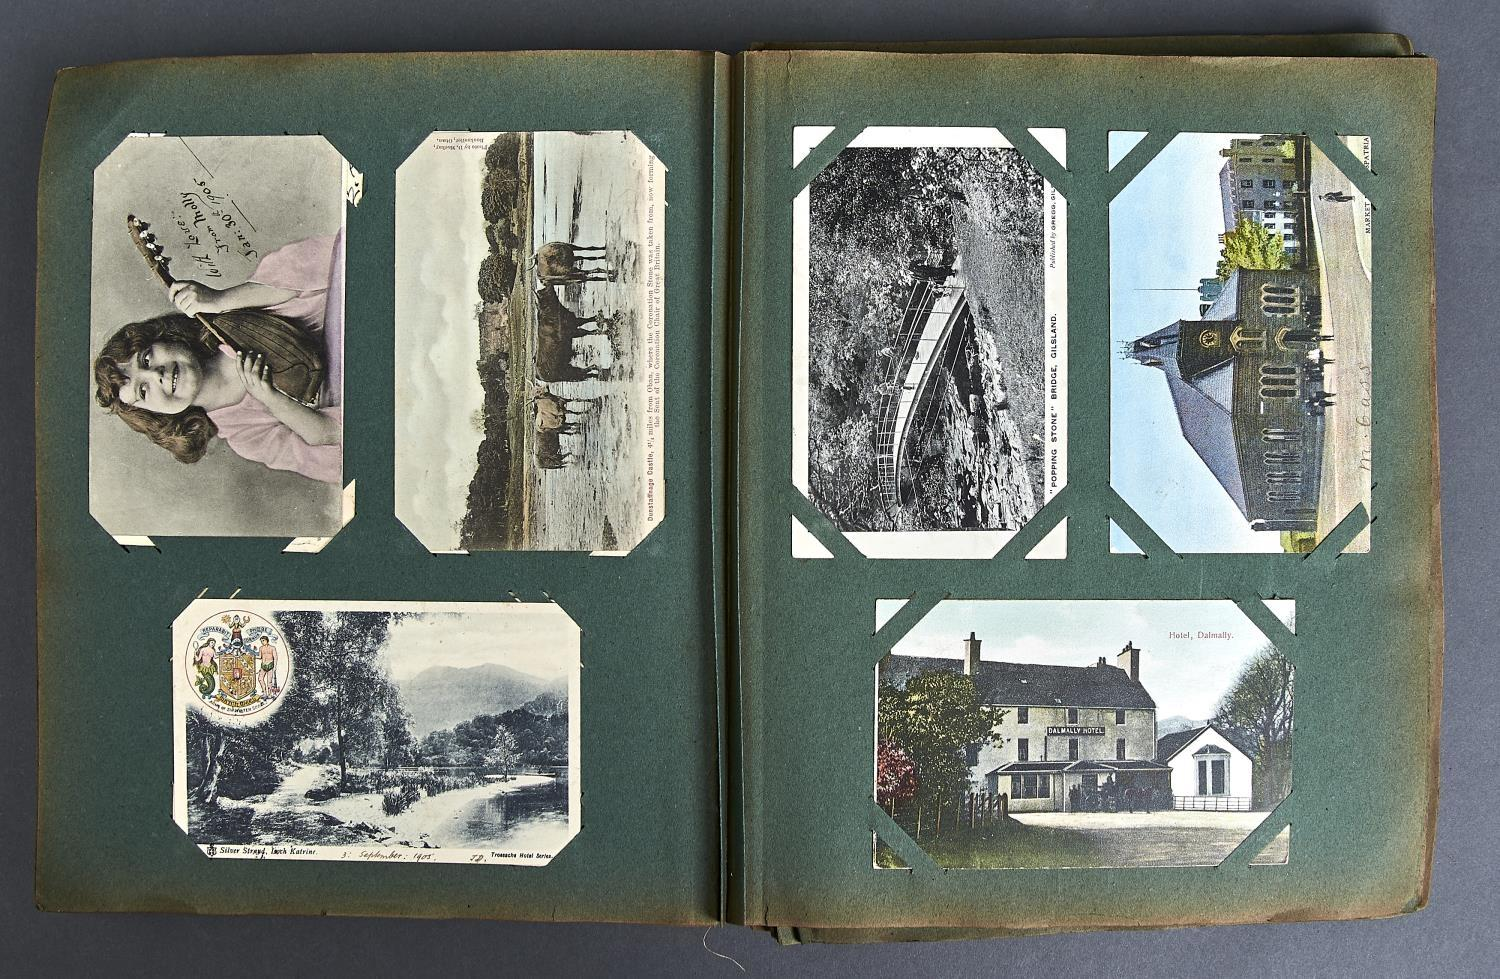 ONE ALBUM OF POSTCARDS, MAINLY UK, EARLY 20TH C, TO INCLUDE LAKE DISTRICT, BOURNEMOUTH, INFANTS,